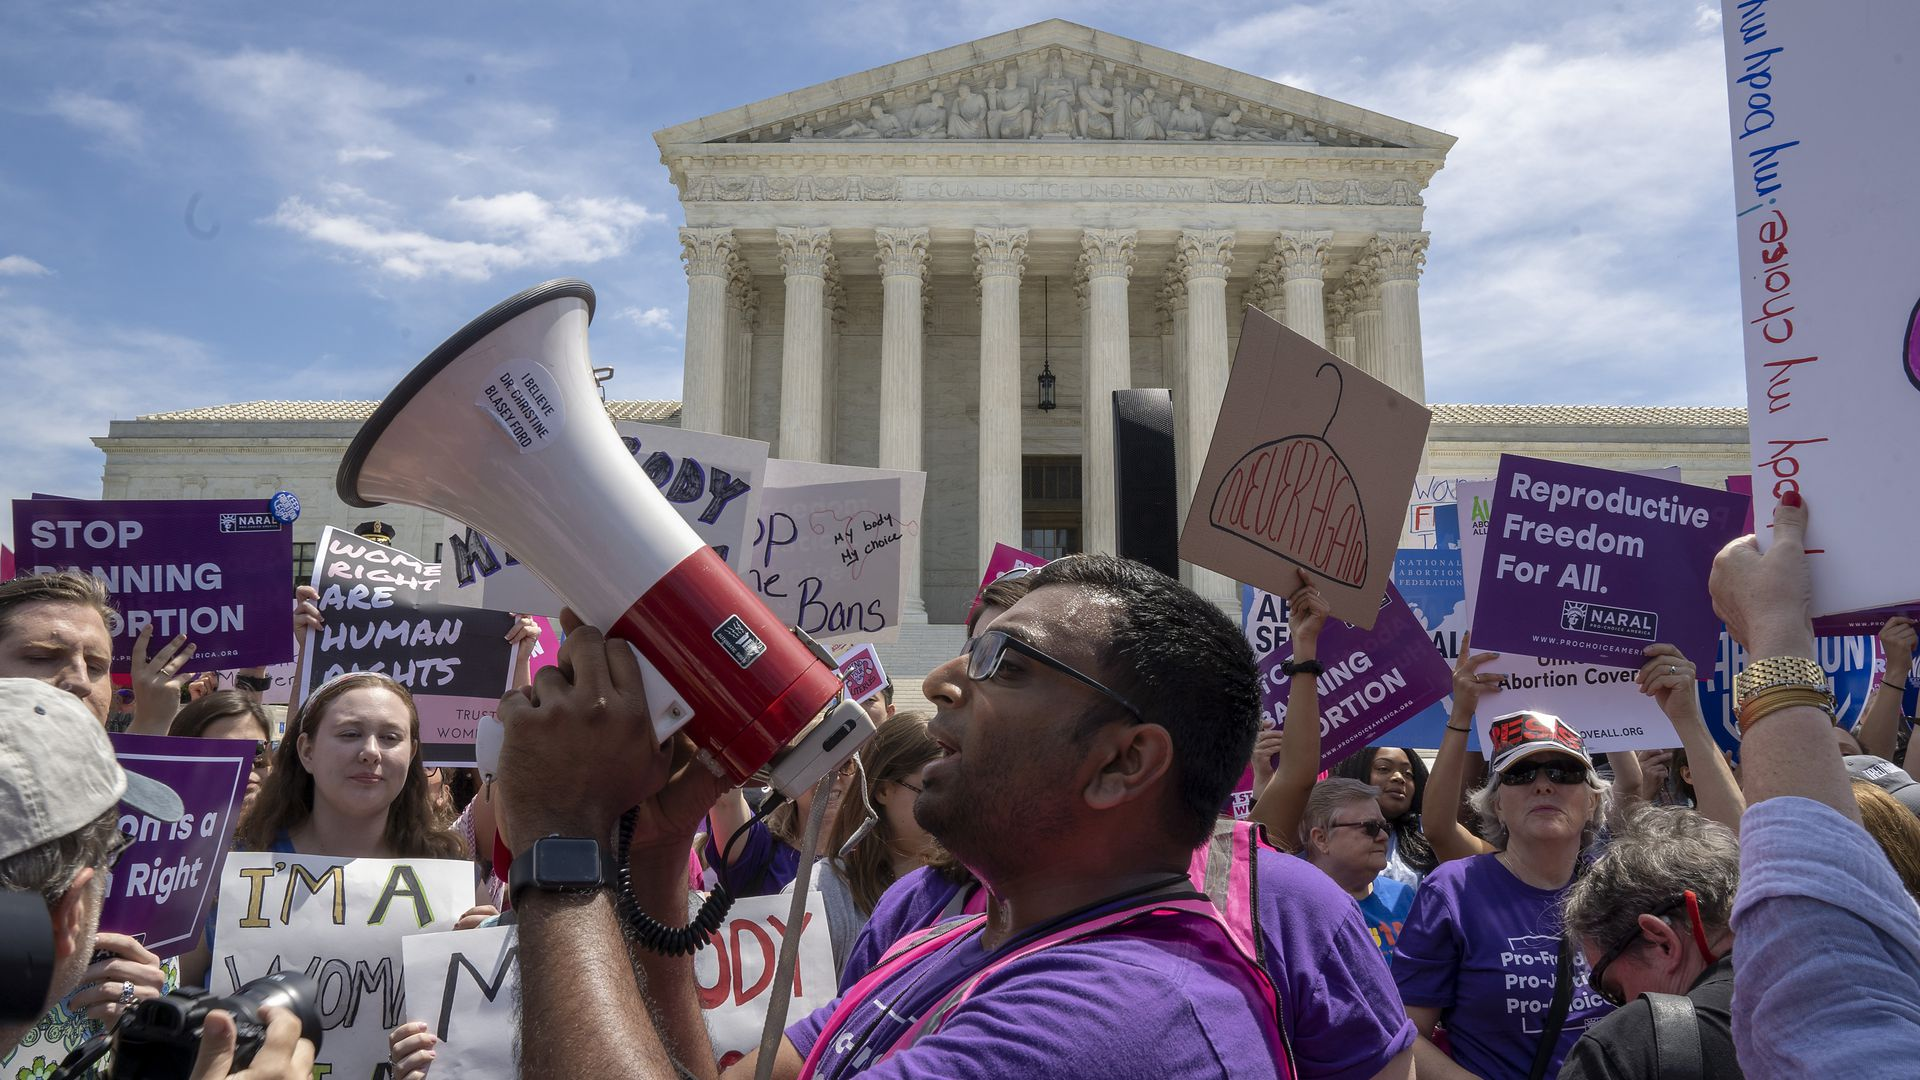 A man holds a megaphone as he leads pro-choice protester chants in front of the supreme court building.